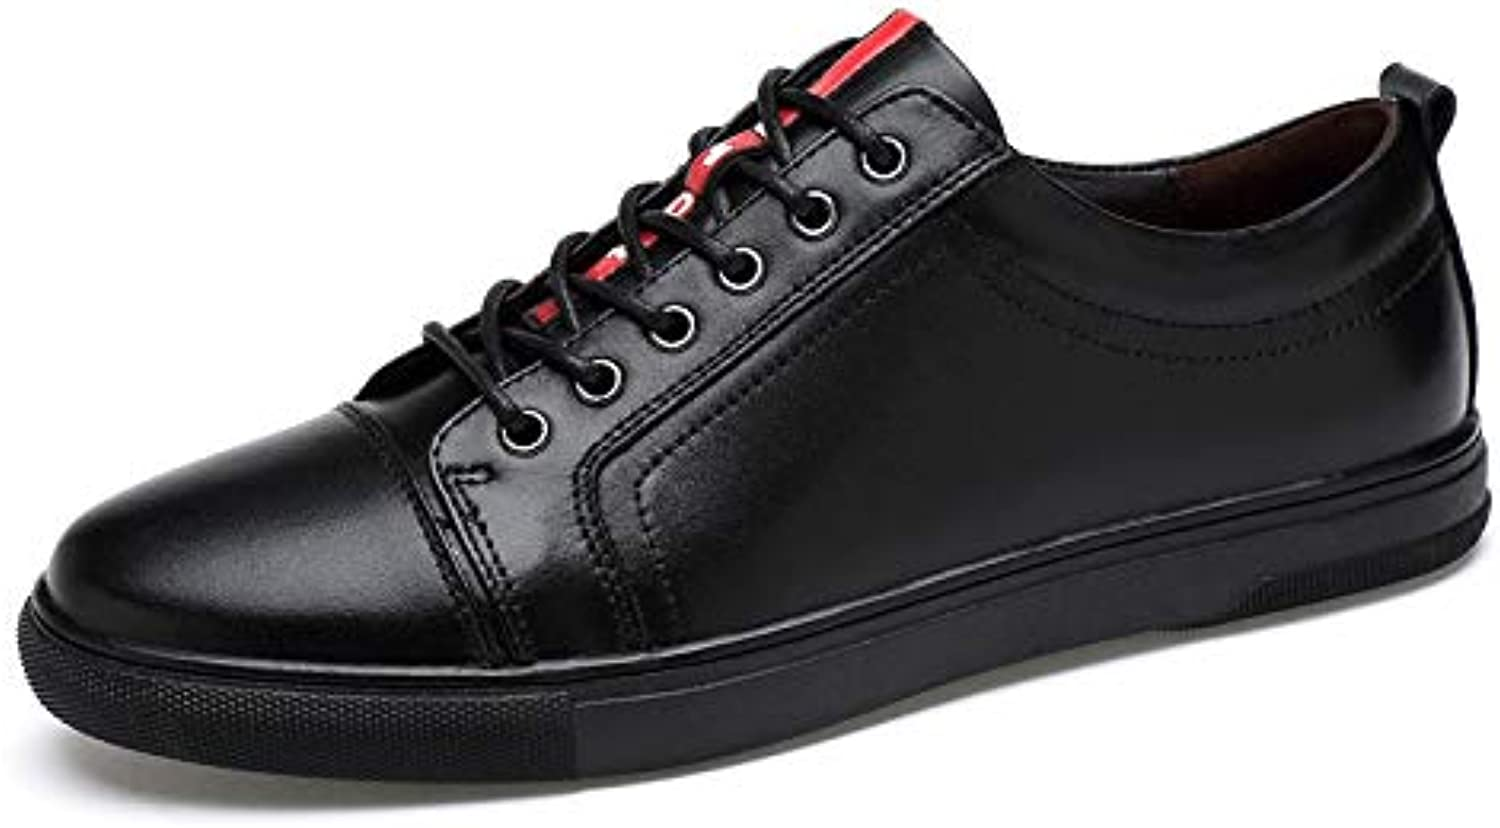 LOVDRAM Men'S shoes shoes Men'S First Layer Leather Small White Large Size 36-46 Yards